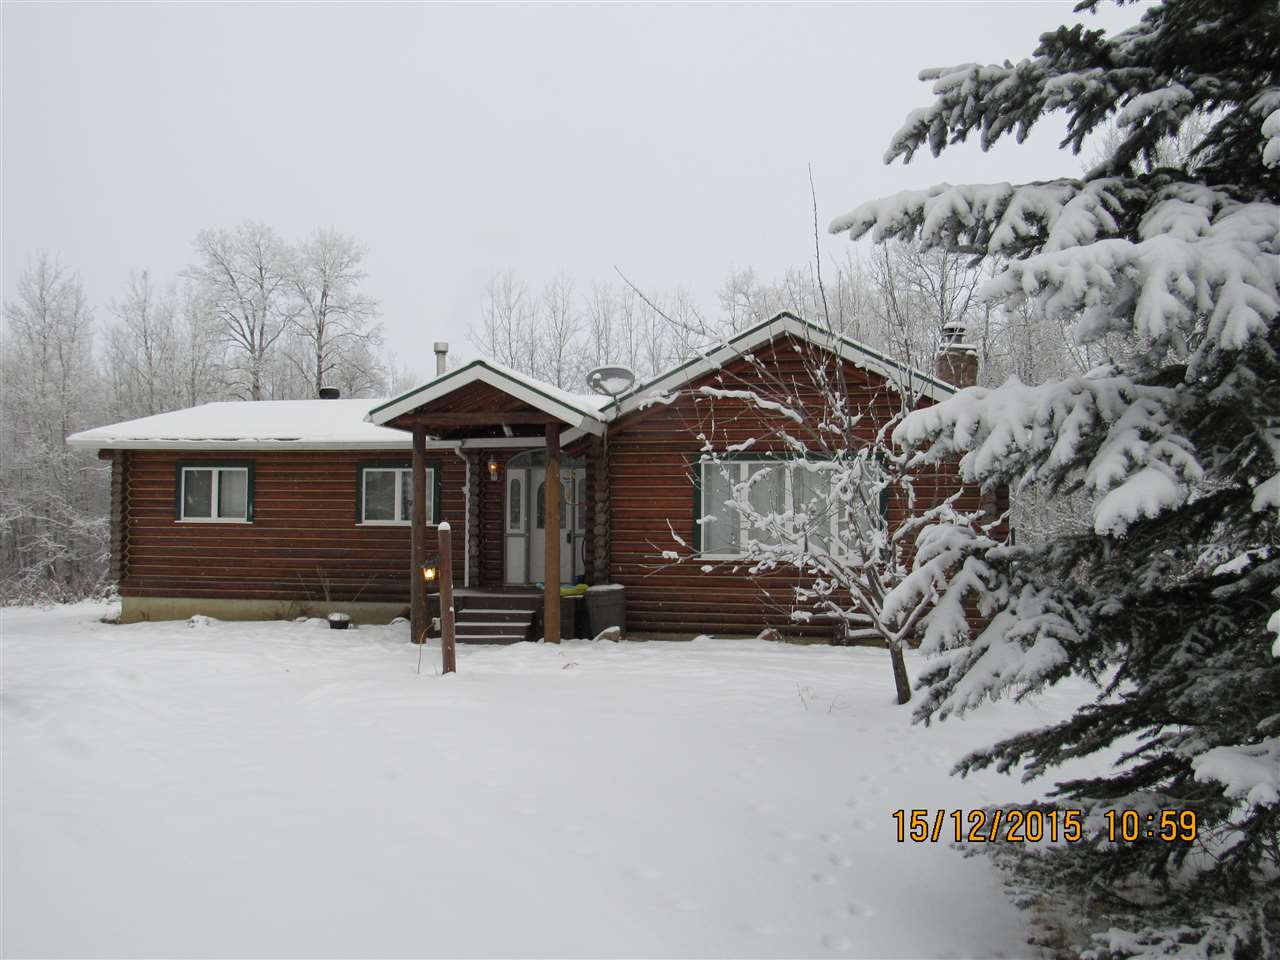 Come visit this Log Home among its treed and private setting only 15 minutes west of Stony Plain.The spacious entrance welcomes you and will invite you into the family room with vaulted ceilings and a beautiful stone fireplace with a free standing wood stove for those chilly winter evenings.  This home has had many upgrades over the last few years.  The hardwood was re-done, an amazing new kitchen with a granite eating bar, and two new bathrooms.  Your Dining room overlooks the private treed back yard.  The kitchen has all newer appliances also.  A total of four bedrooms with three upstairs.  The master has patio doors to the rear deck and his and her closets as well as a 3 pc ensuite.The walkout basement is mostly unfinished waiting for your creativity. This property feels like  a park.  Welcome Home!!